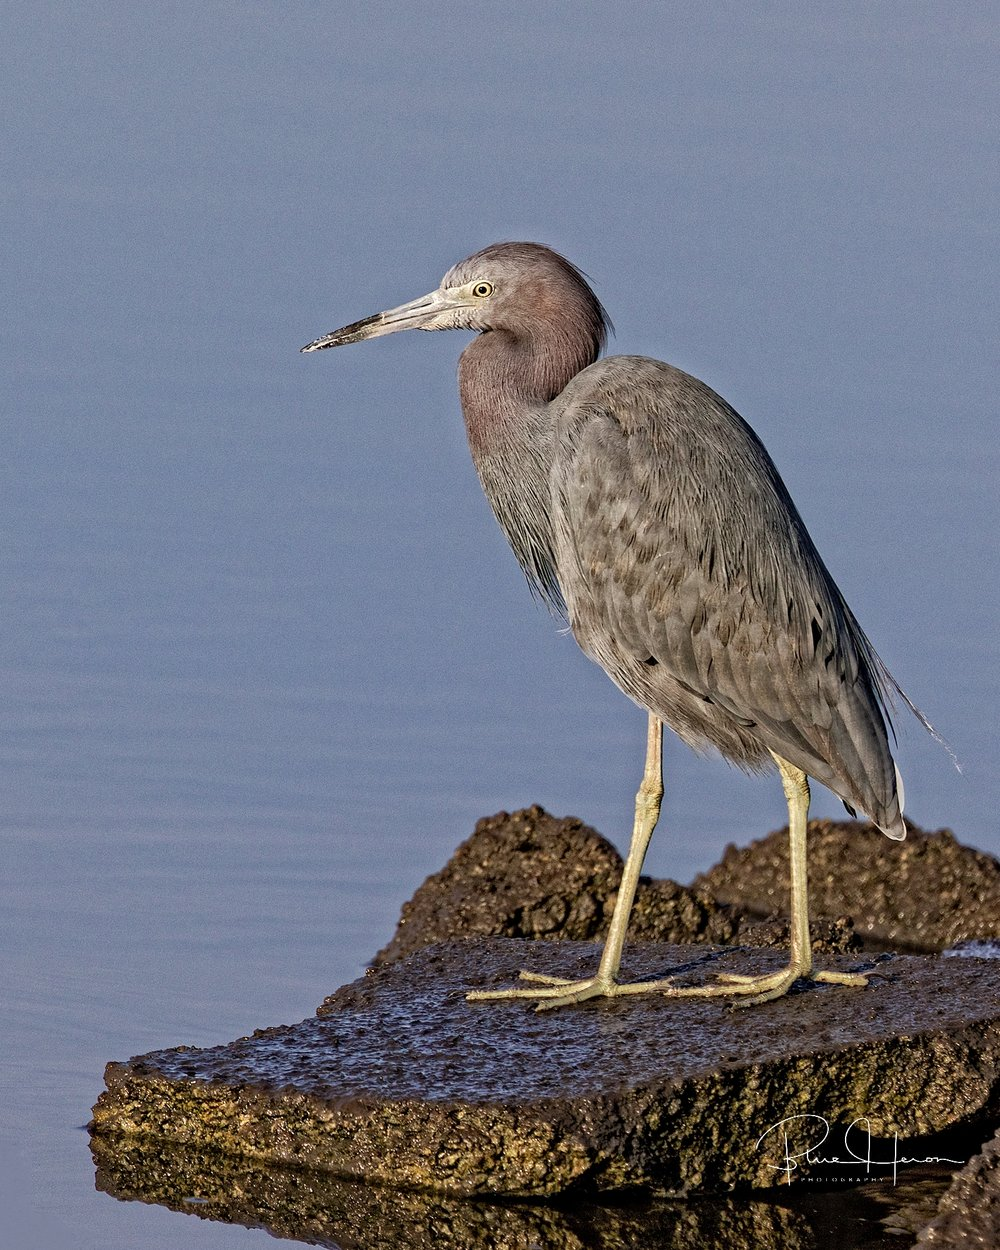 Broward Bob, the Little Blue Heron and prognosticator predicts the sun will rise tomorrow as scheduled on the eternal clock of time.